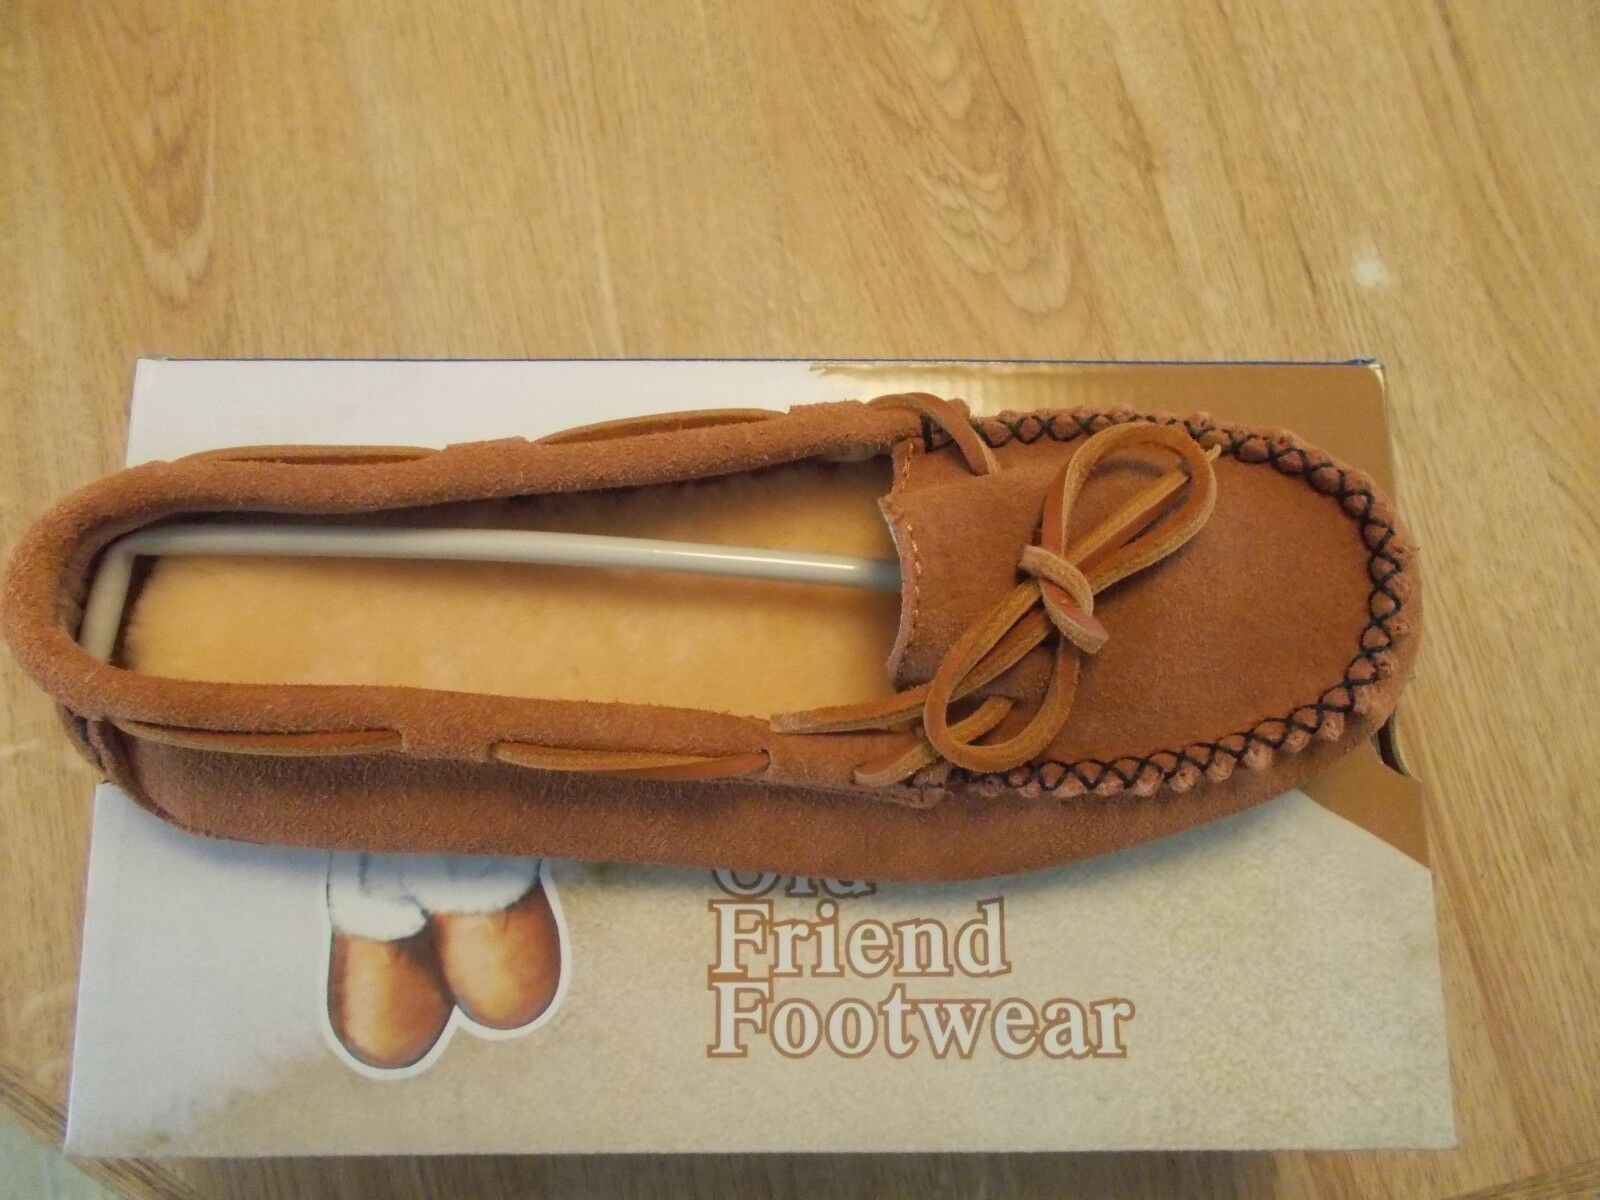 OLD FRIEND WOMEN'S JEMMA MOCCASIN STYLE SLIPPER TAN SIZES 6 TO 11  MEDIUM